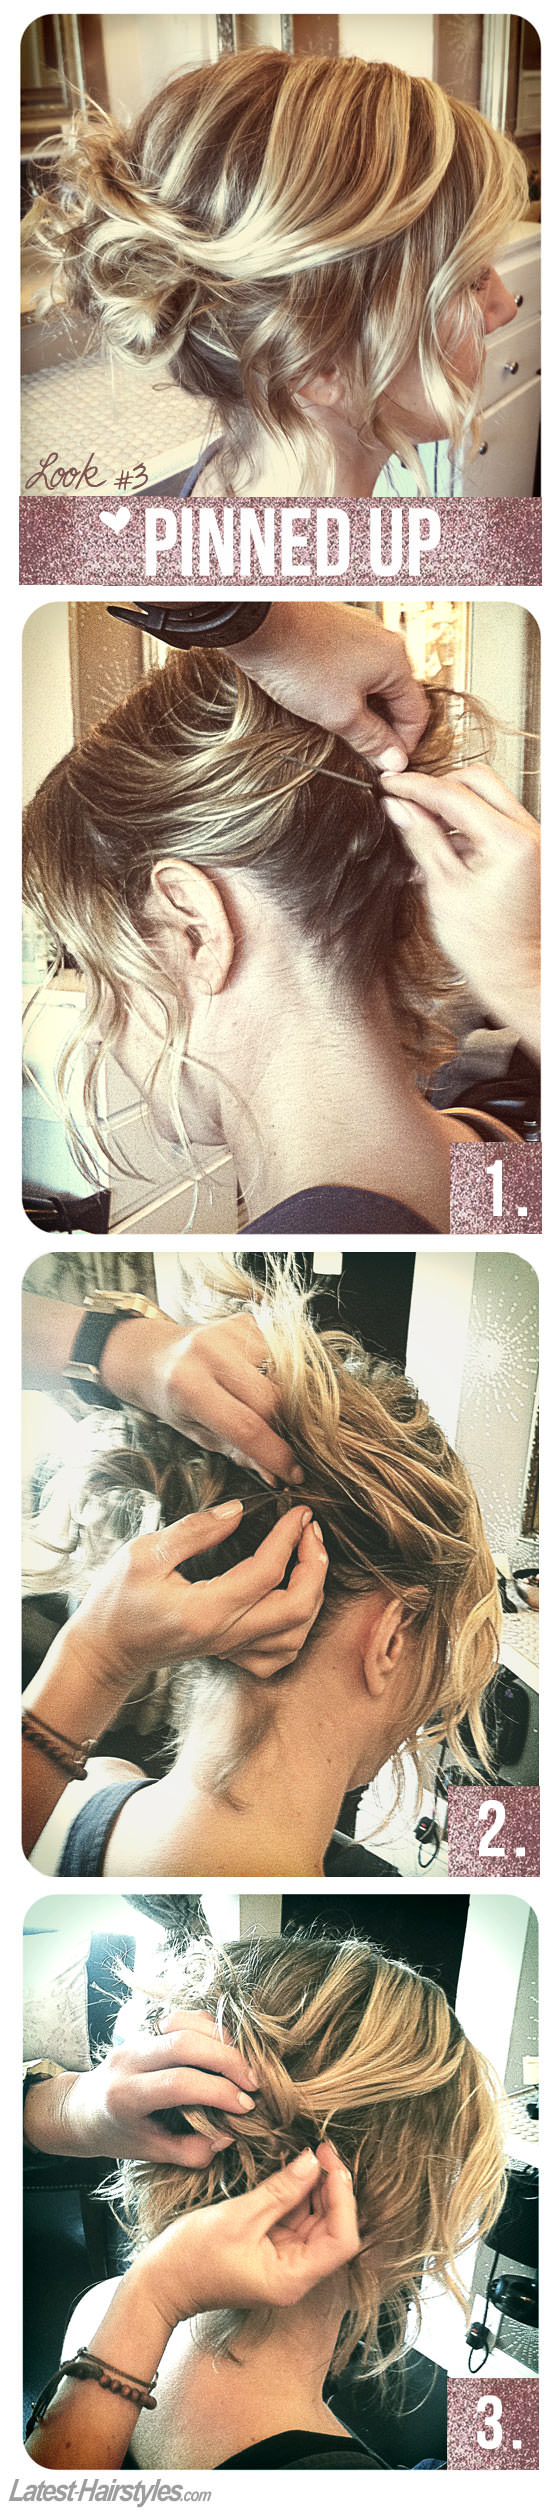 3 Hairstyles Anyone Can Do With a Short Bob Haircut – #3 Pinned Up